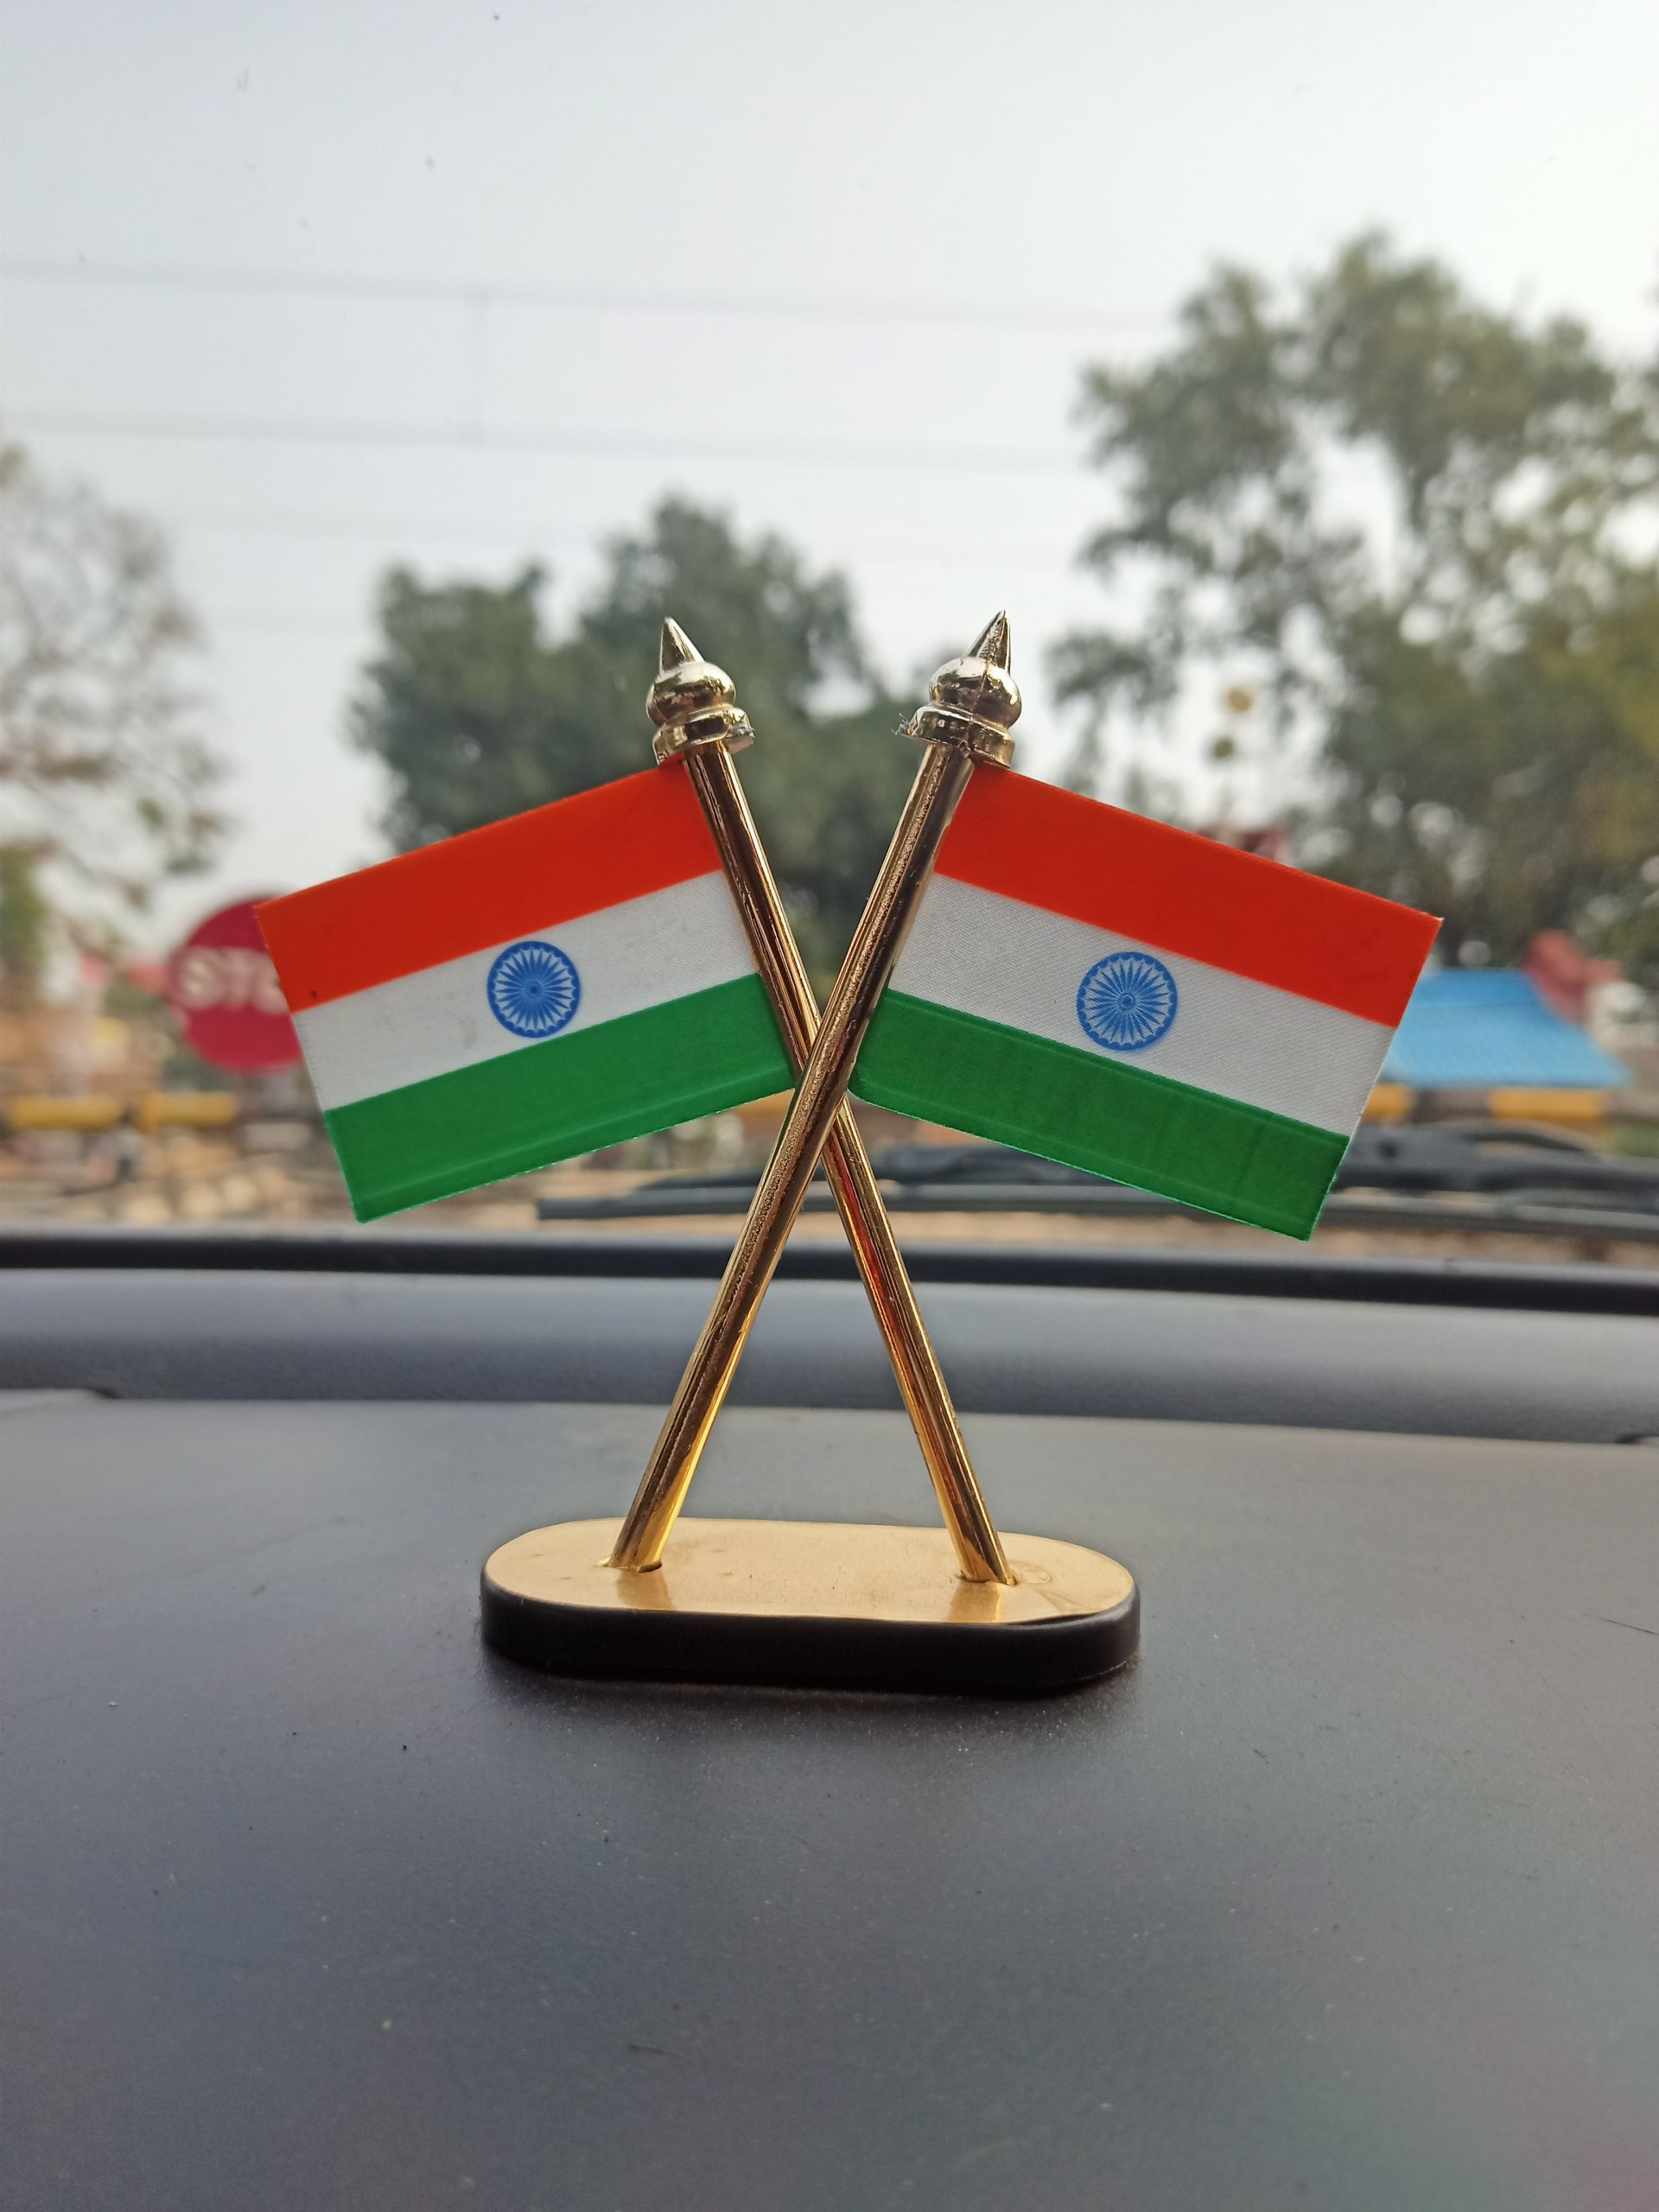 Indian flags on car dashboard